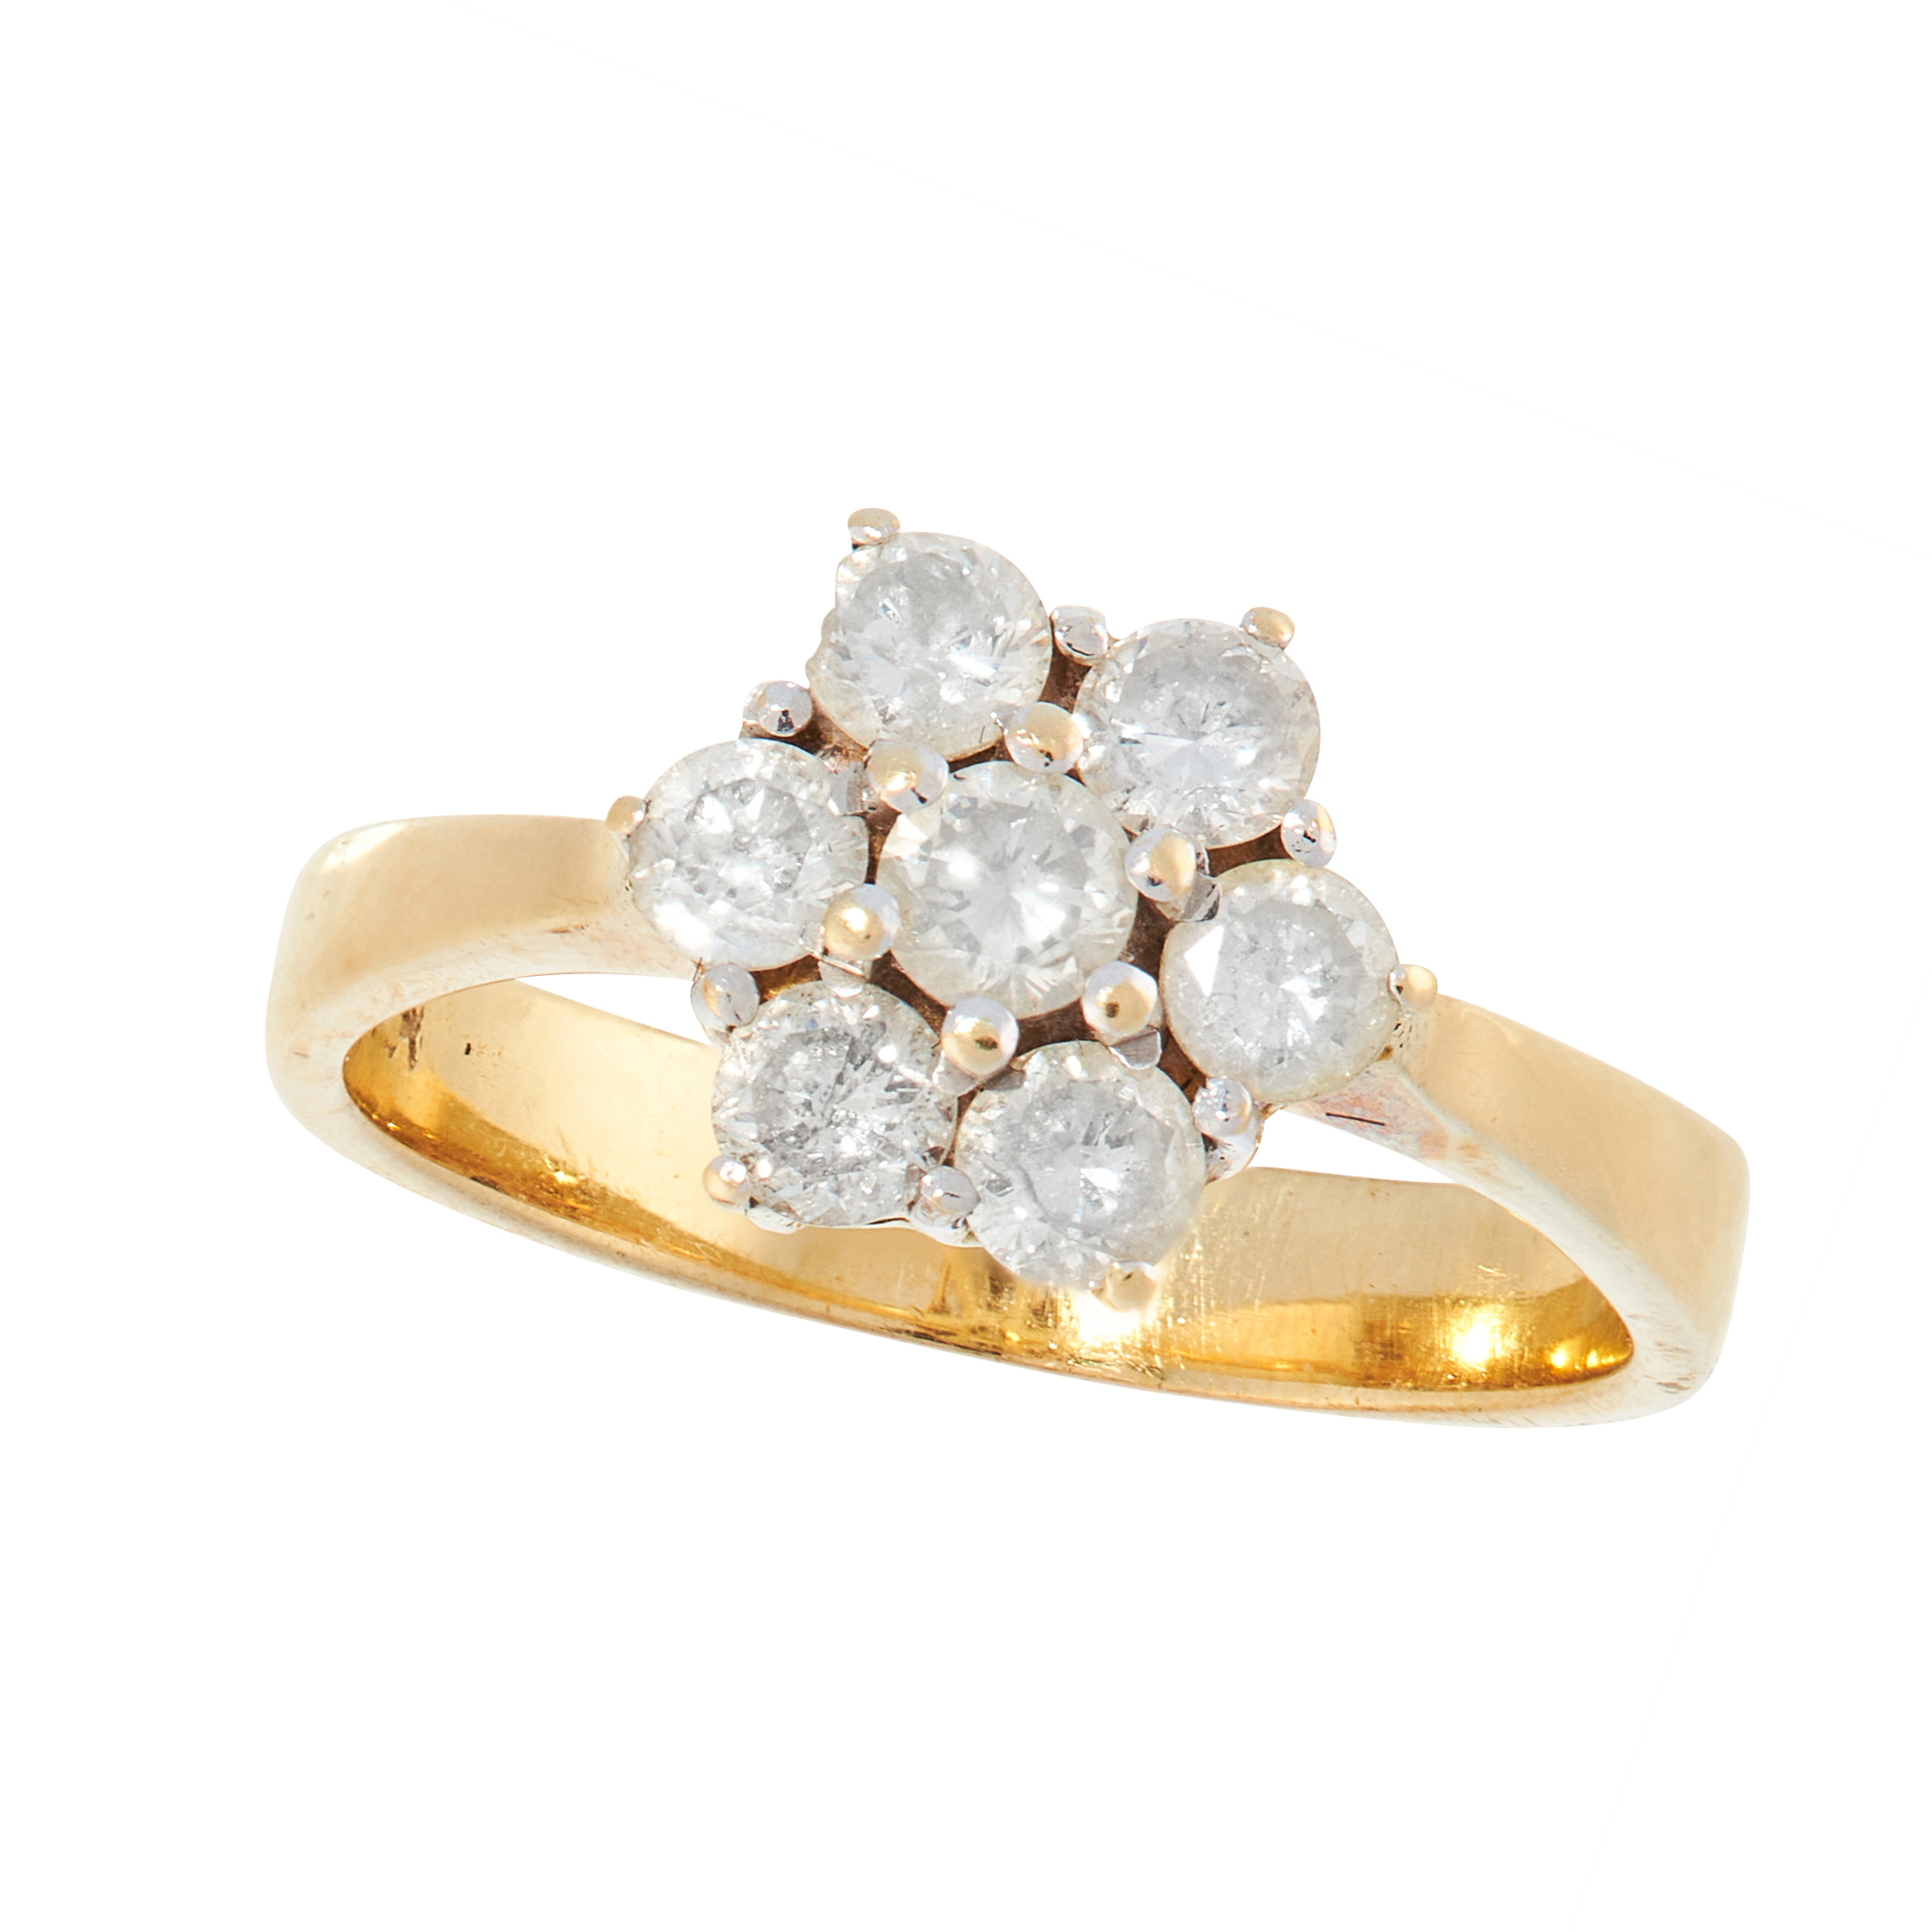 A VINTAGE DIAMOND CLUSTER DRESS RING in 18ct yellow gold, set with a cluster of seven round cut